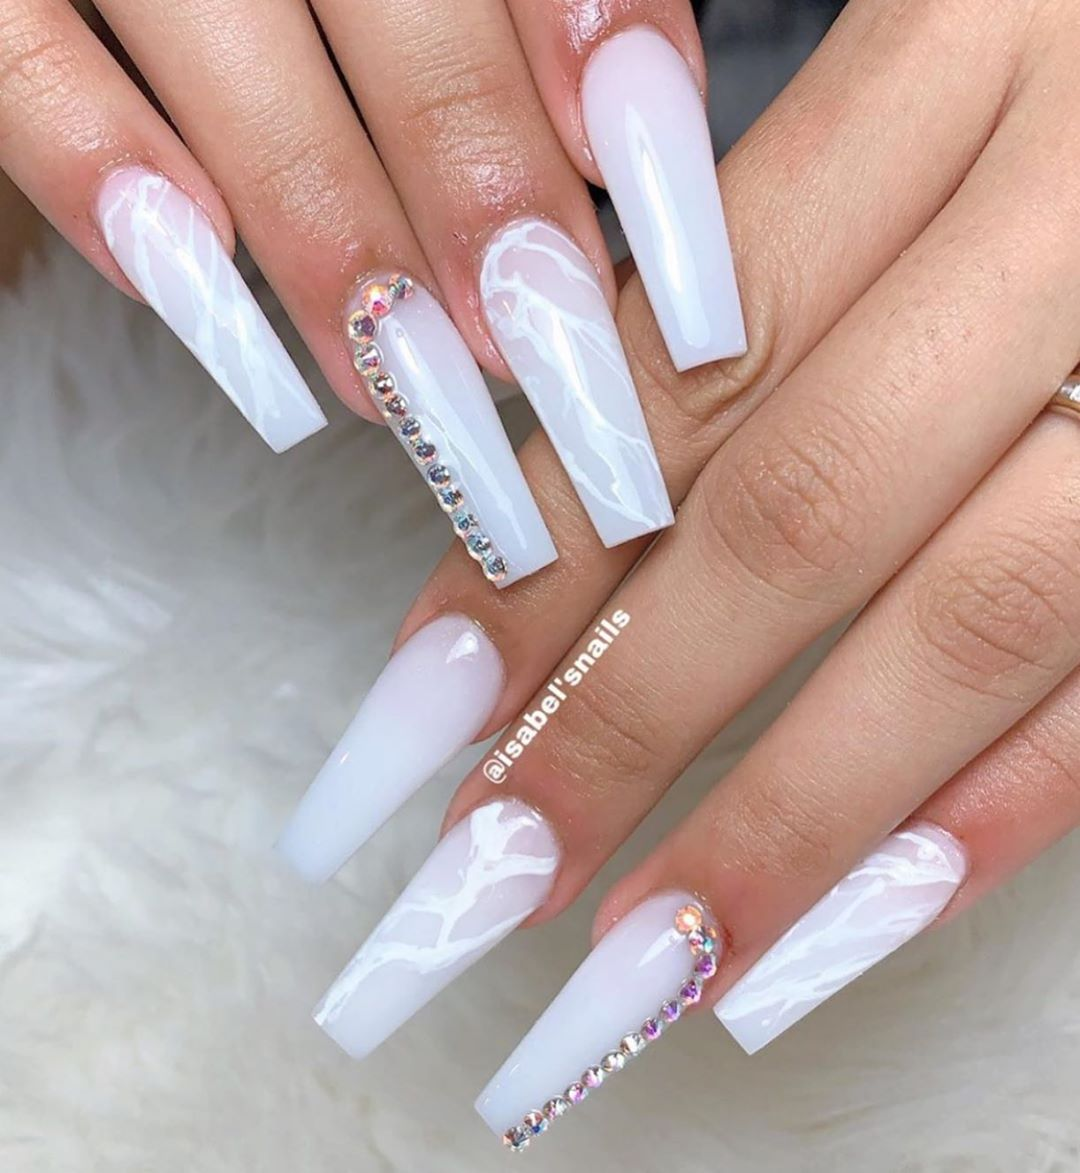 Long Nail Designs To Inspire You -